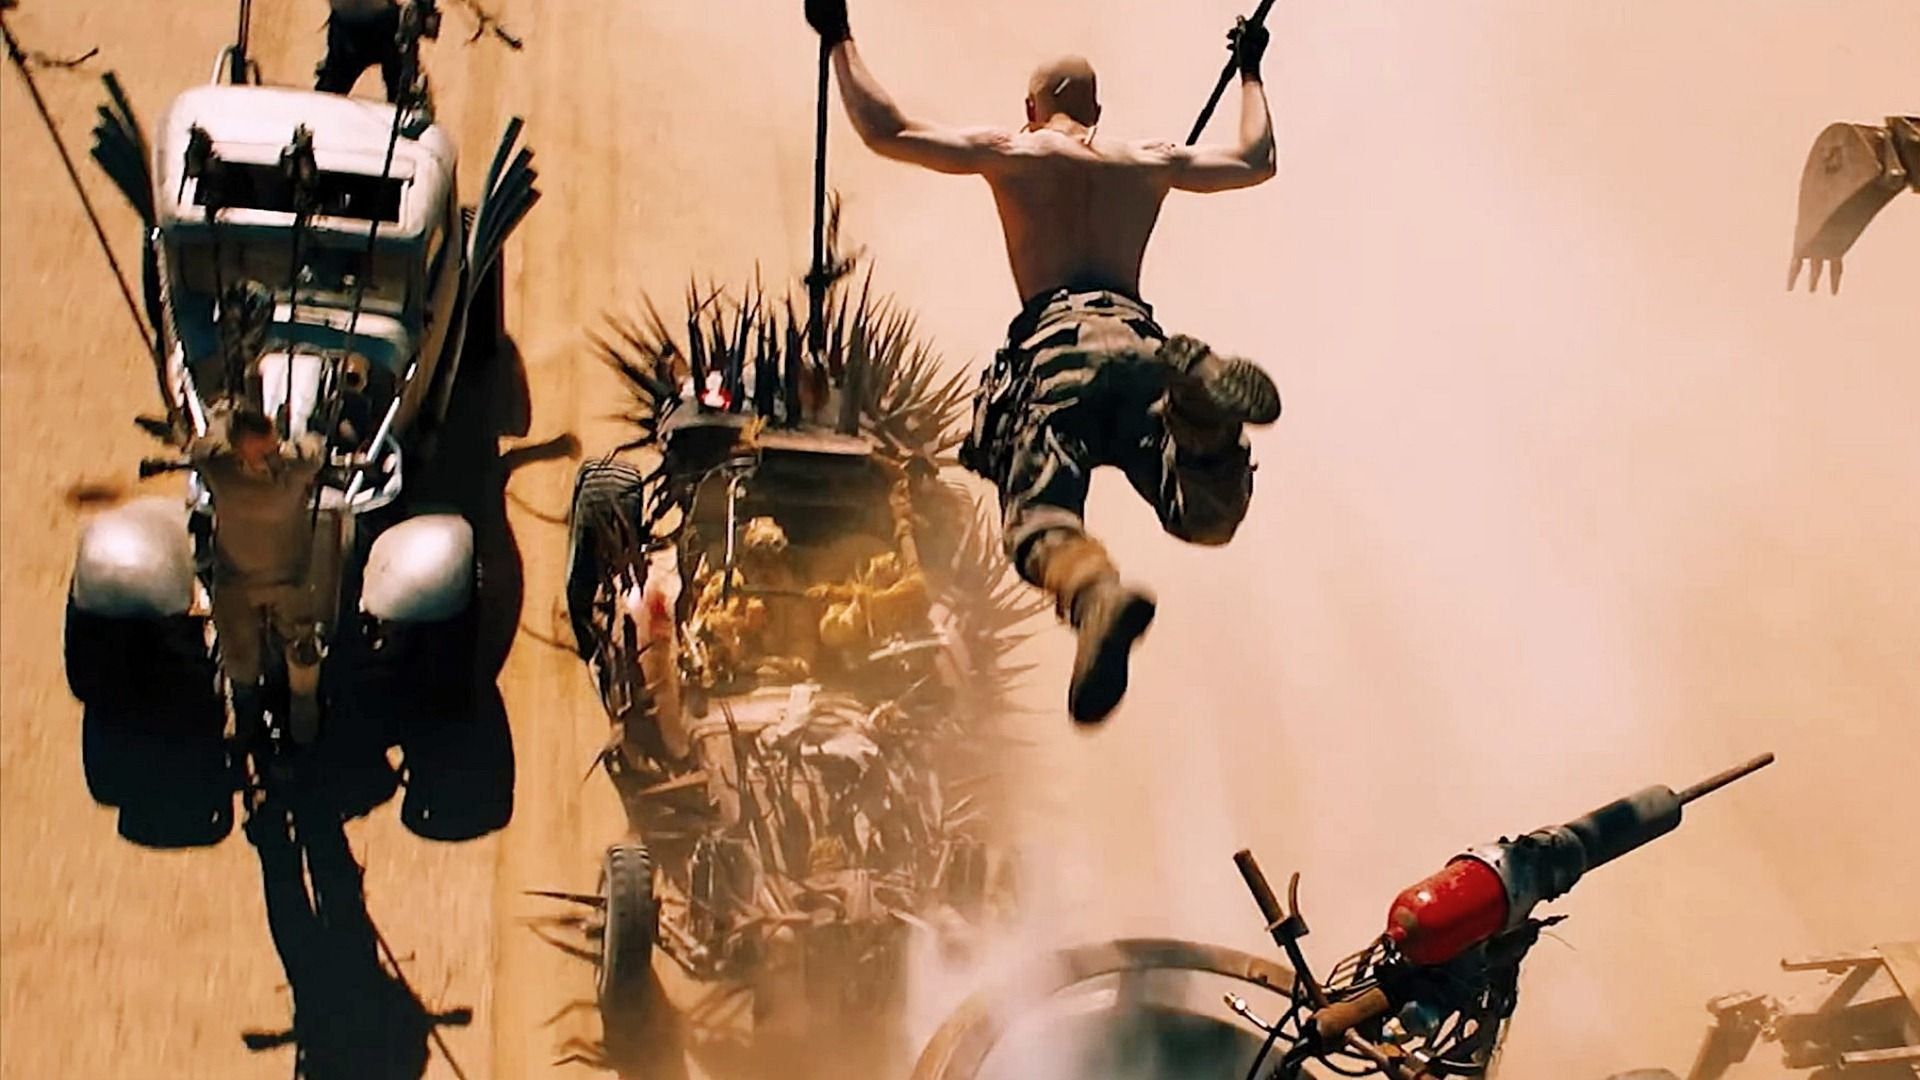 ... , Brutal Ritual of Mad Max: Fury Road » Hammer & Thump - A Film Blog